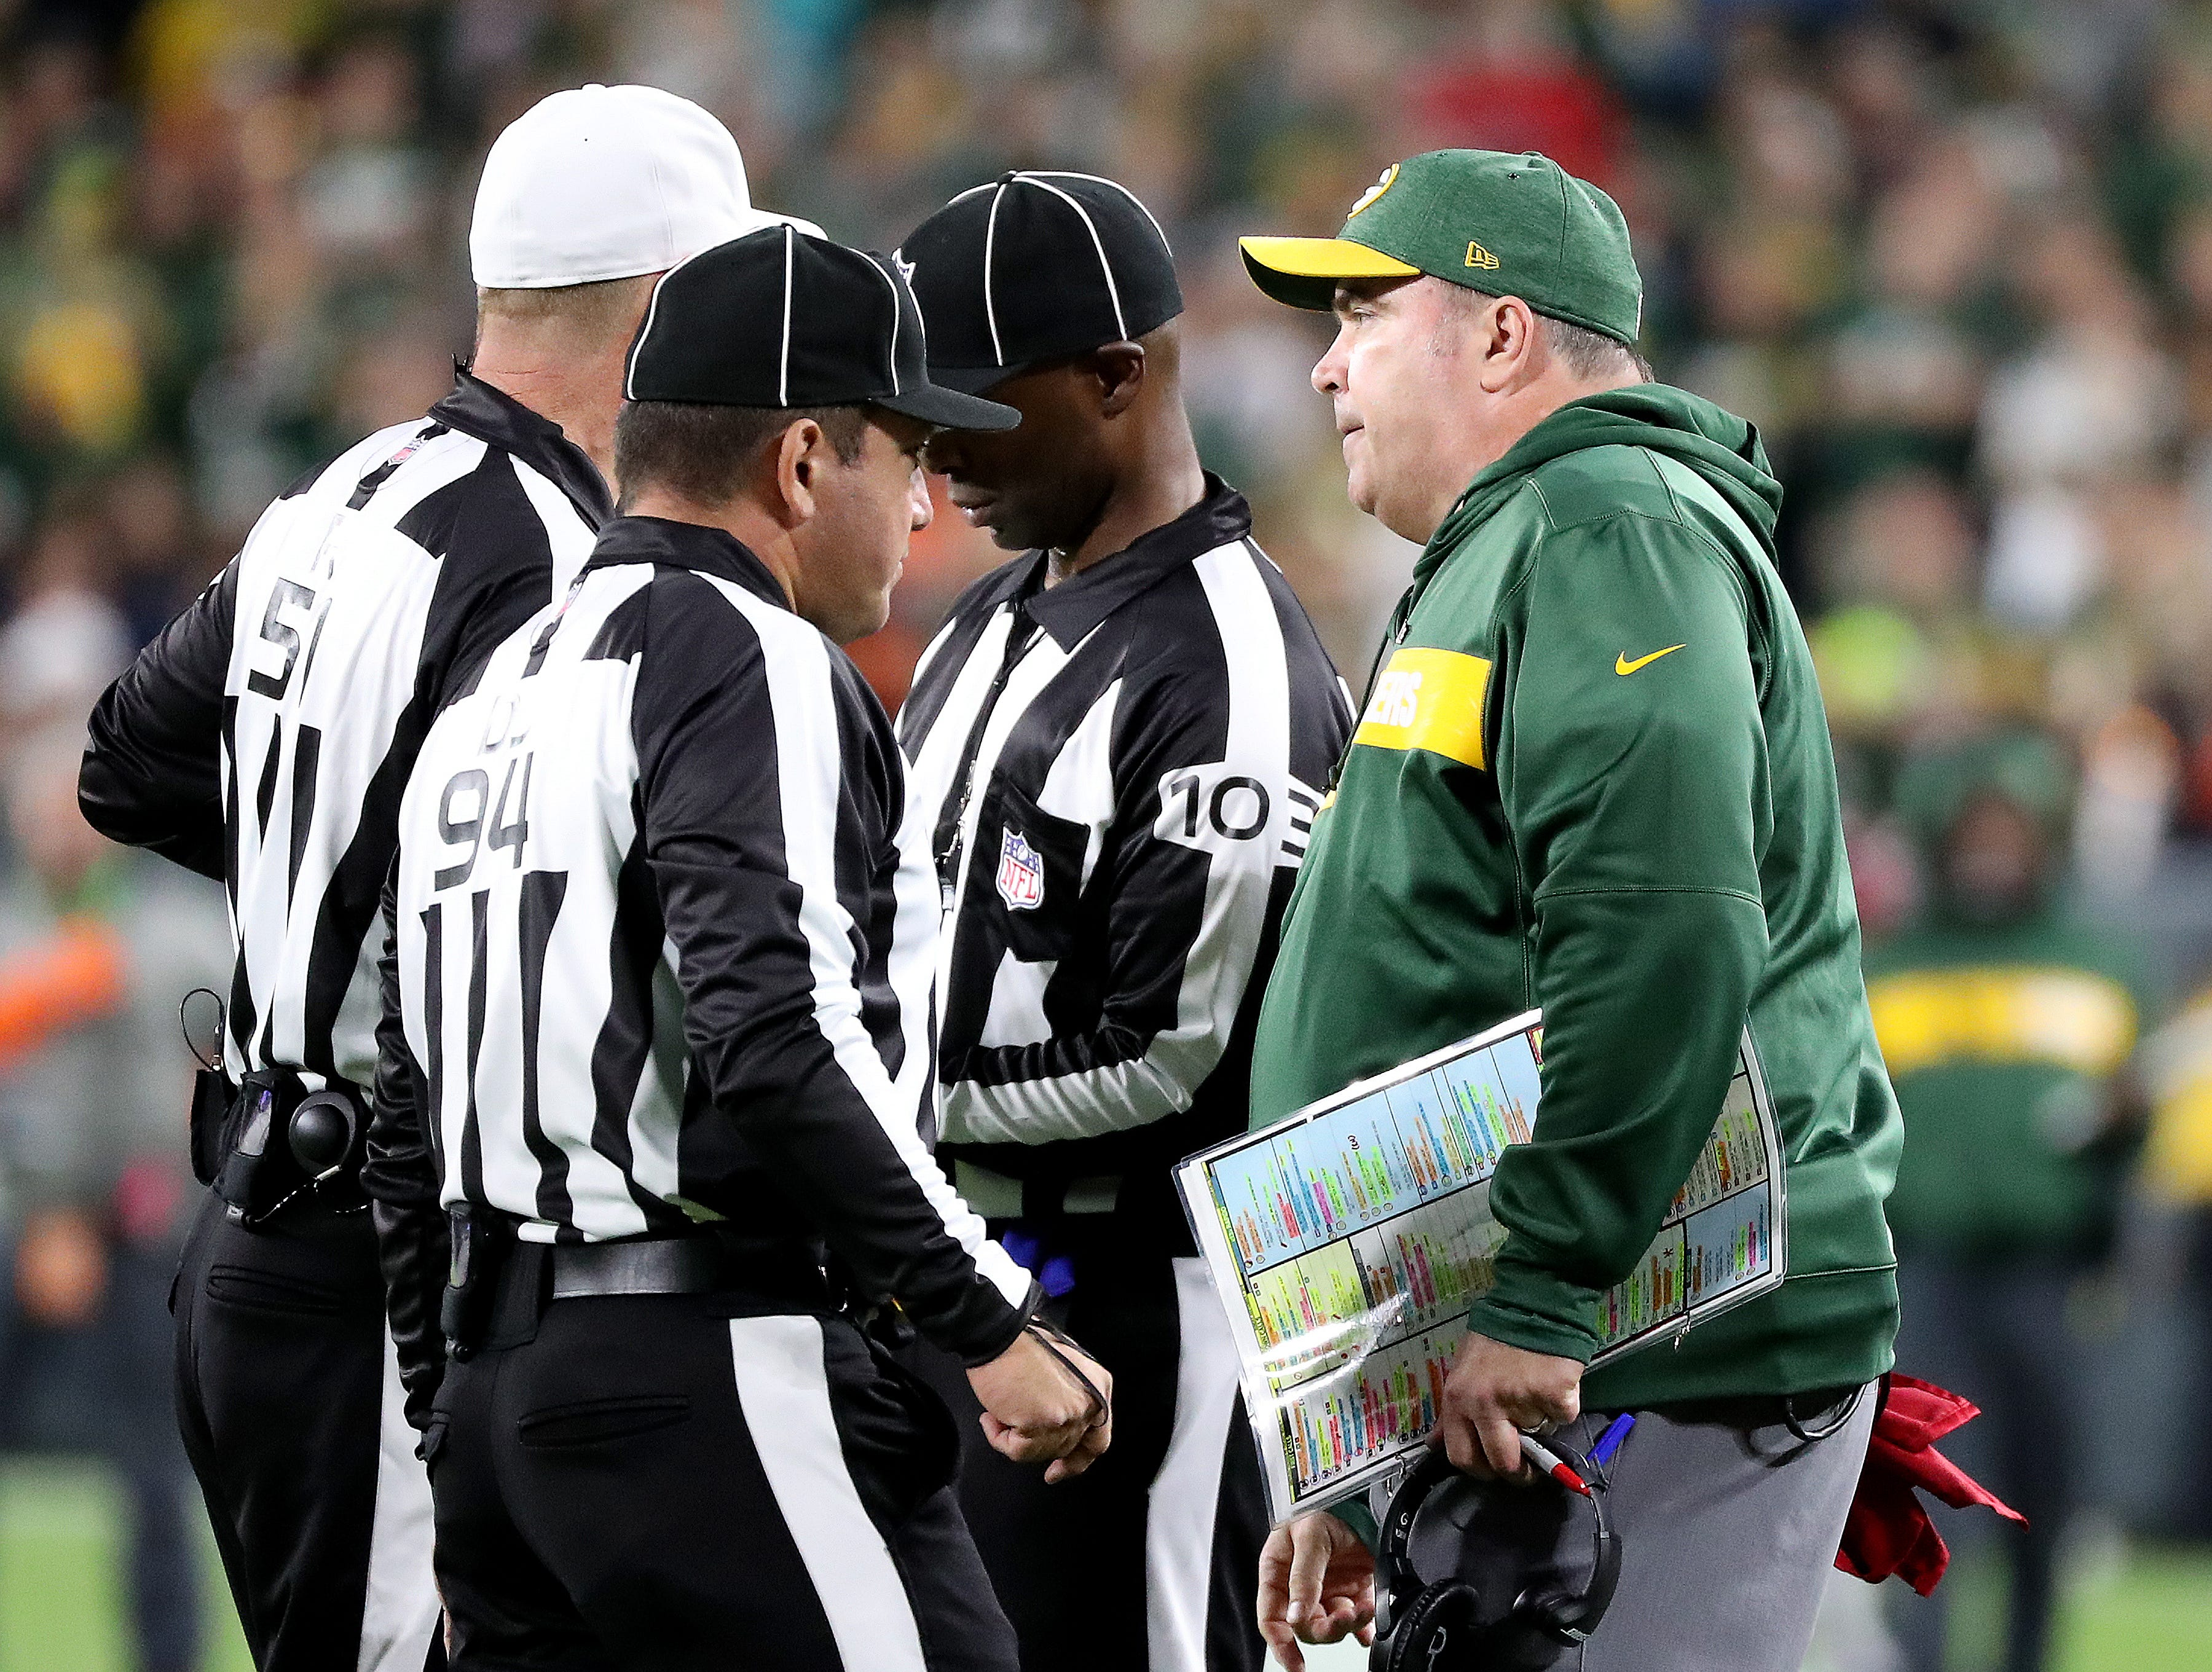 Green Bay Packers head coach Mike McCarthy challenges a call in the fourth quarter against the Chicago Bears Sunday, September 9, 2018 at Lambeau Field in Green Bay, Wis.